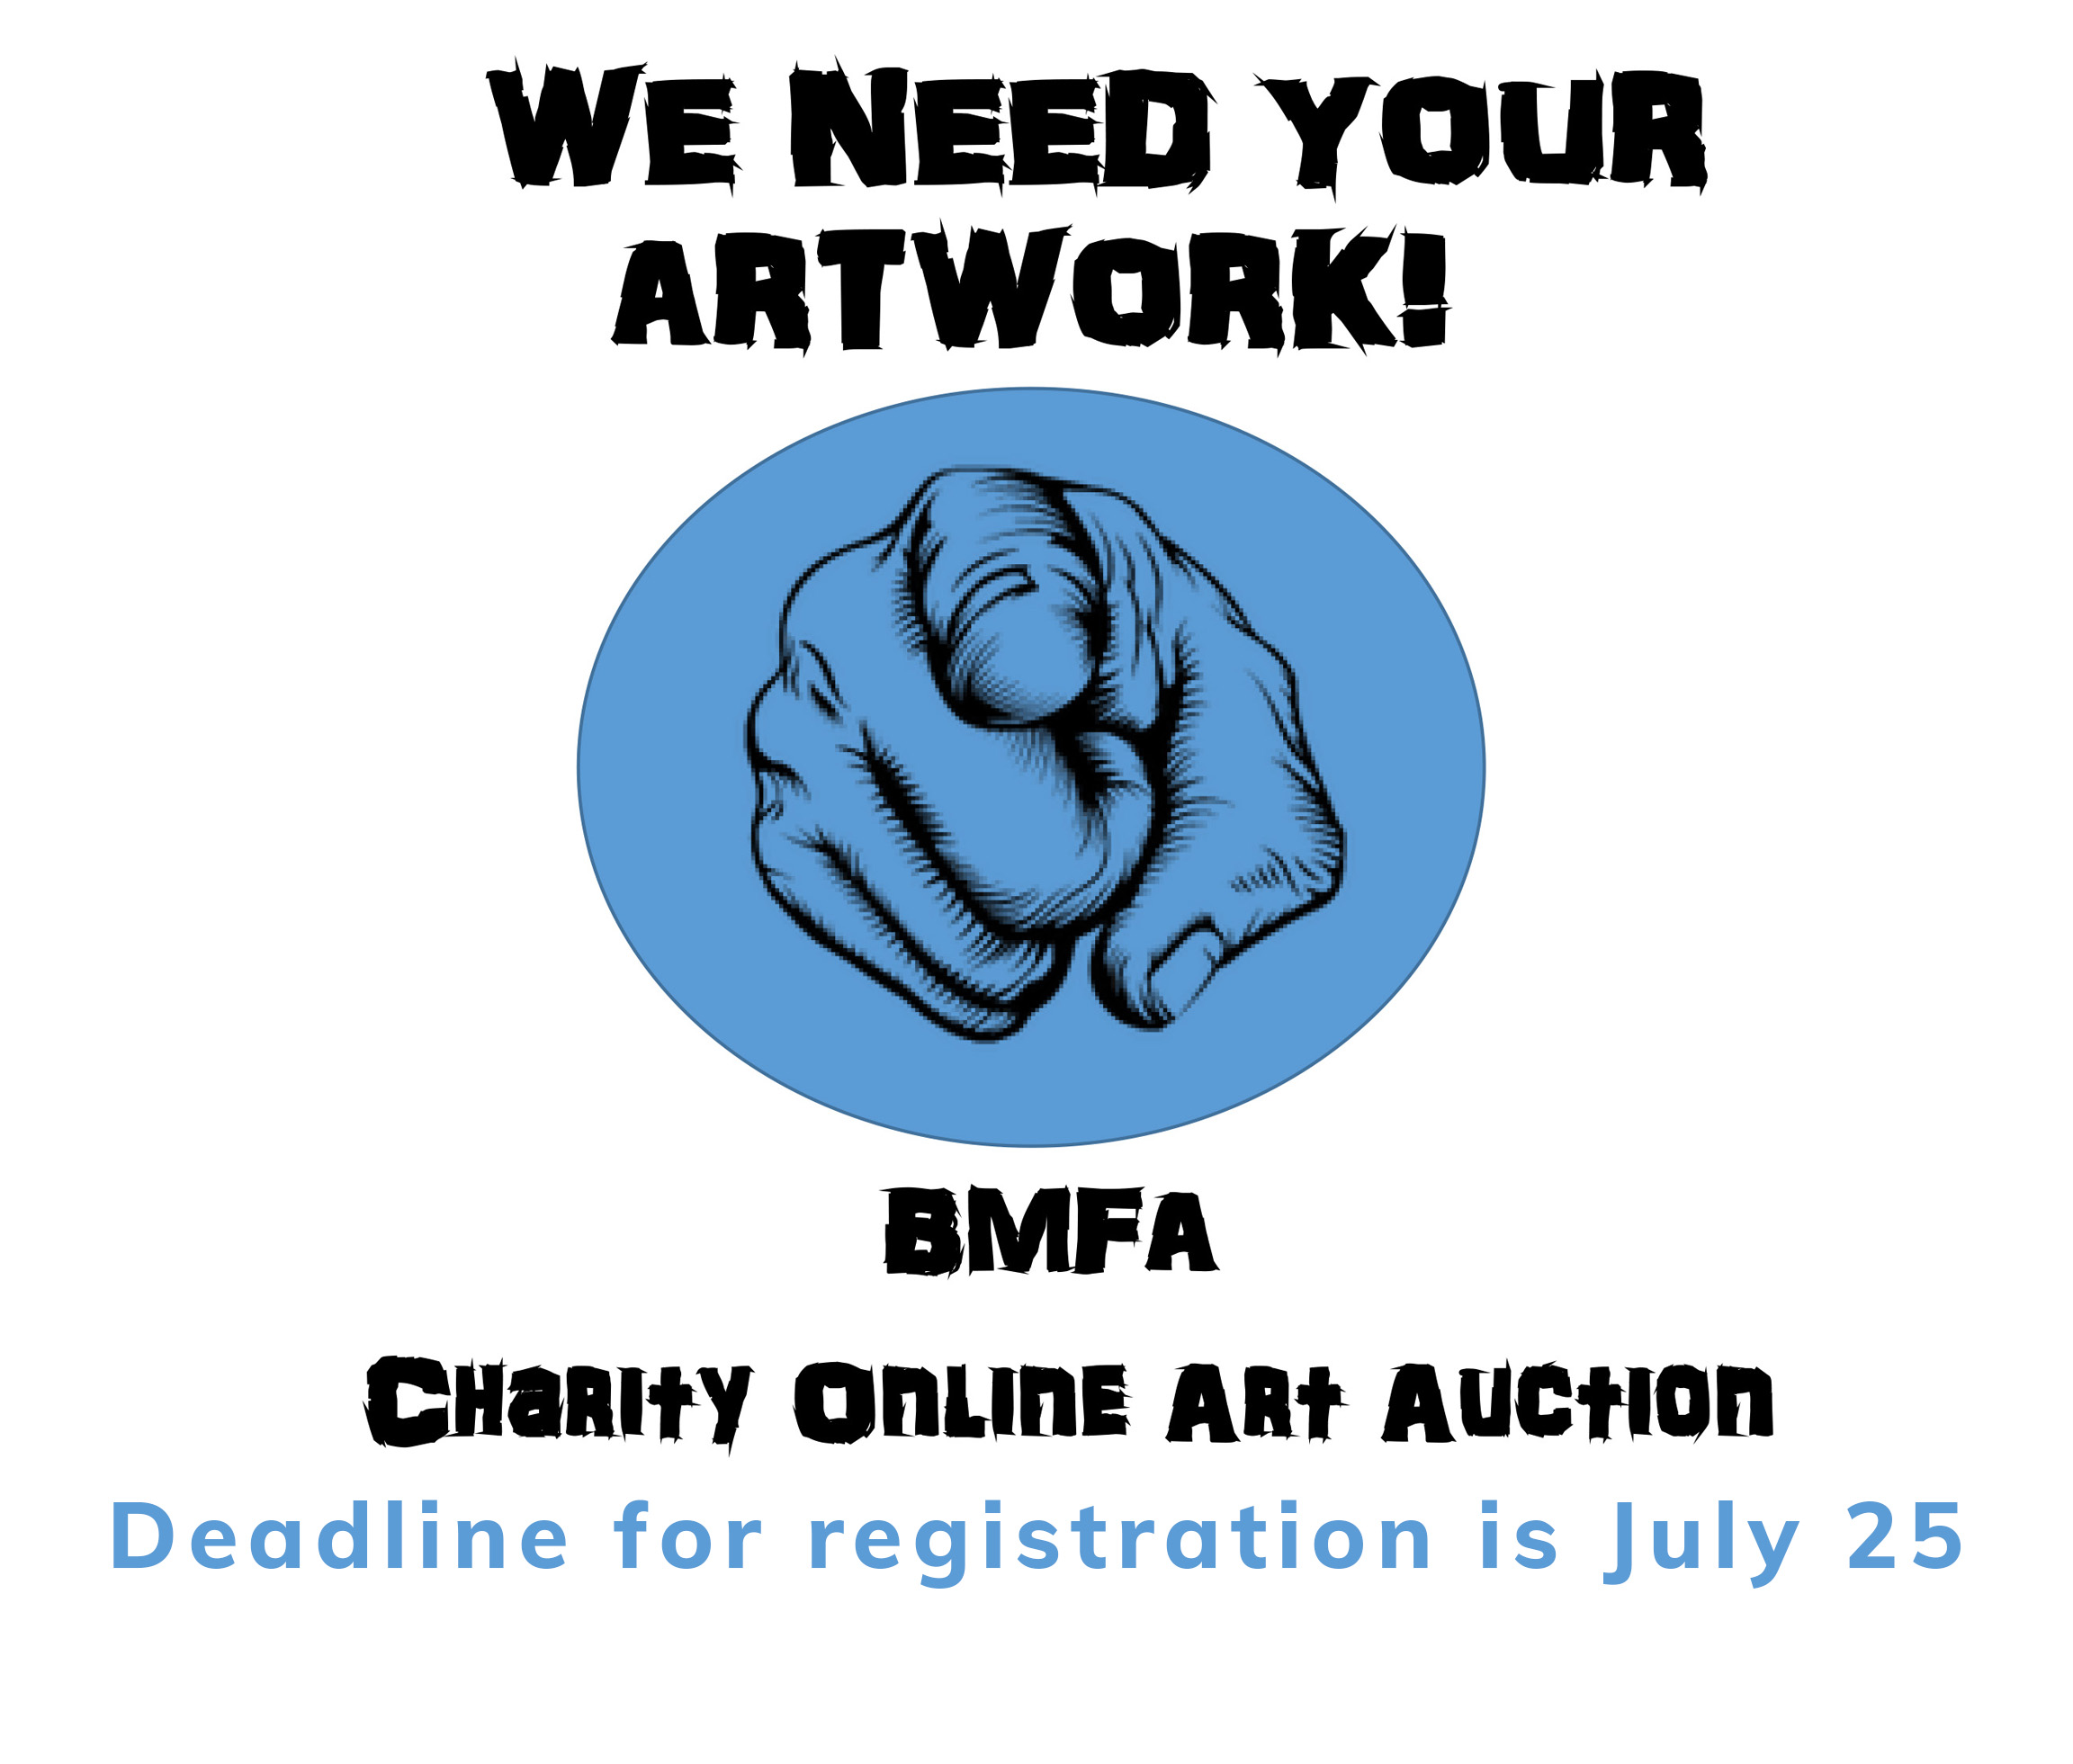 wE NEED YOUR ARTWORK 3